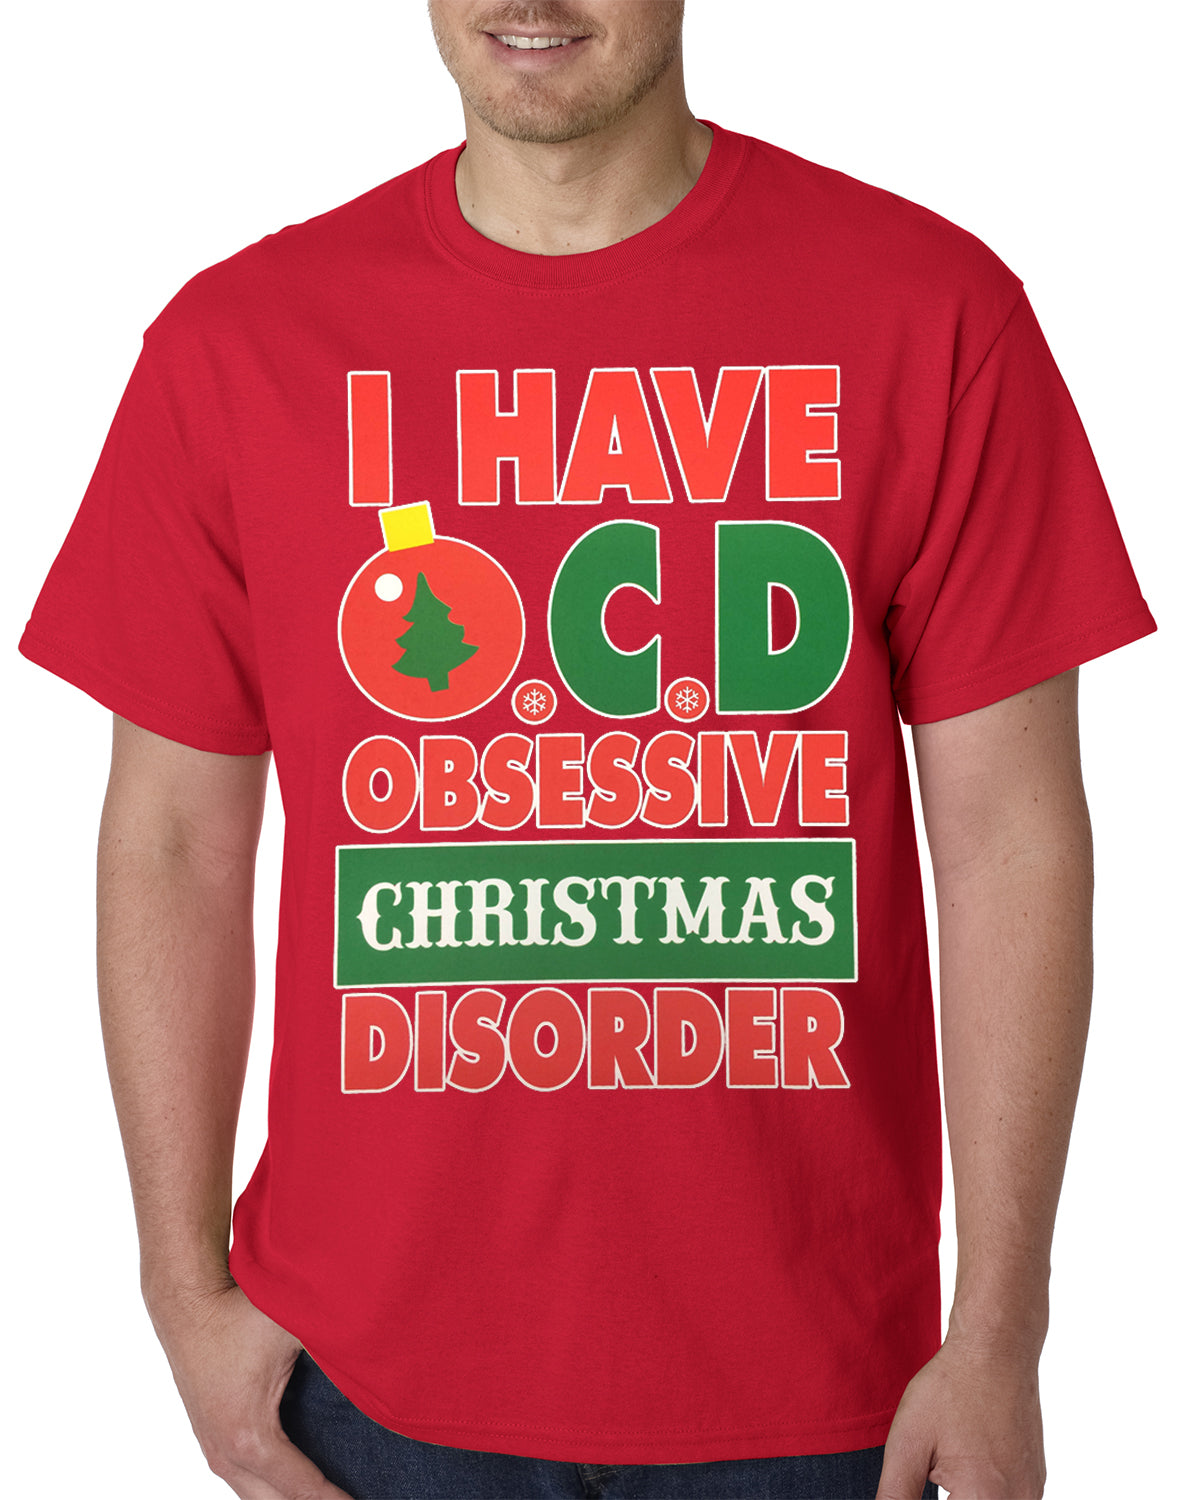 OCD - Obsessive Christmas Disorder Mens T-shirt